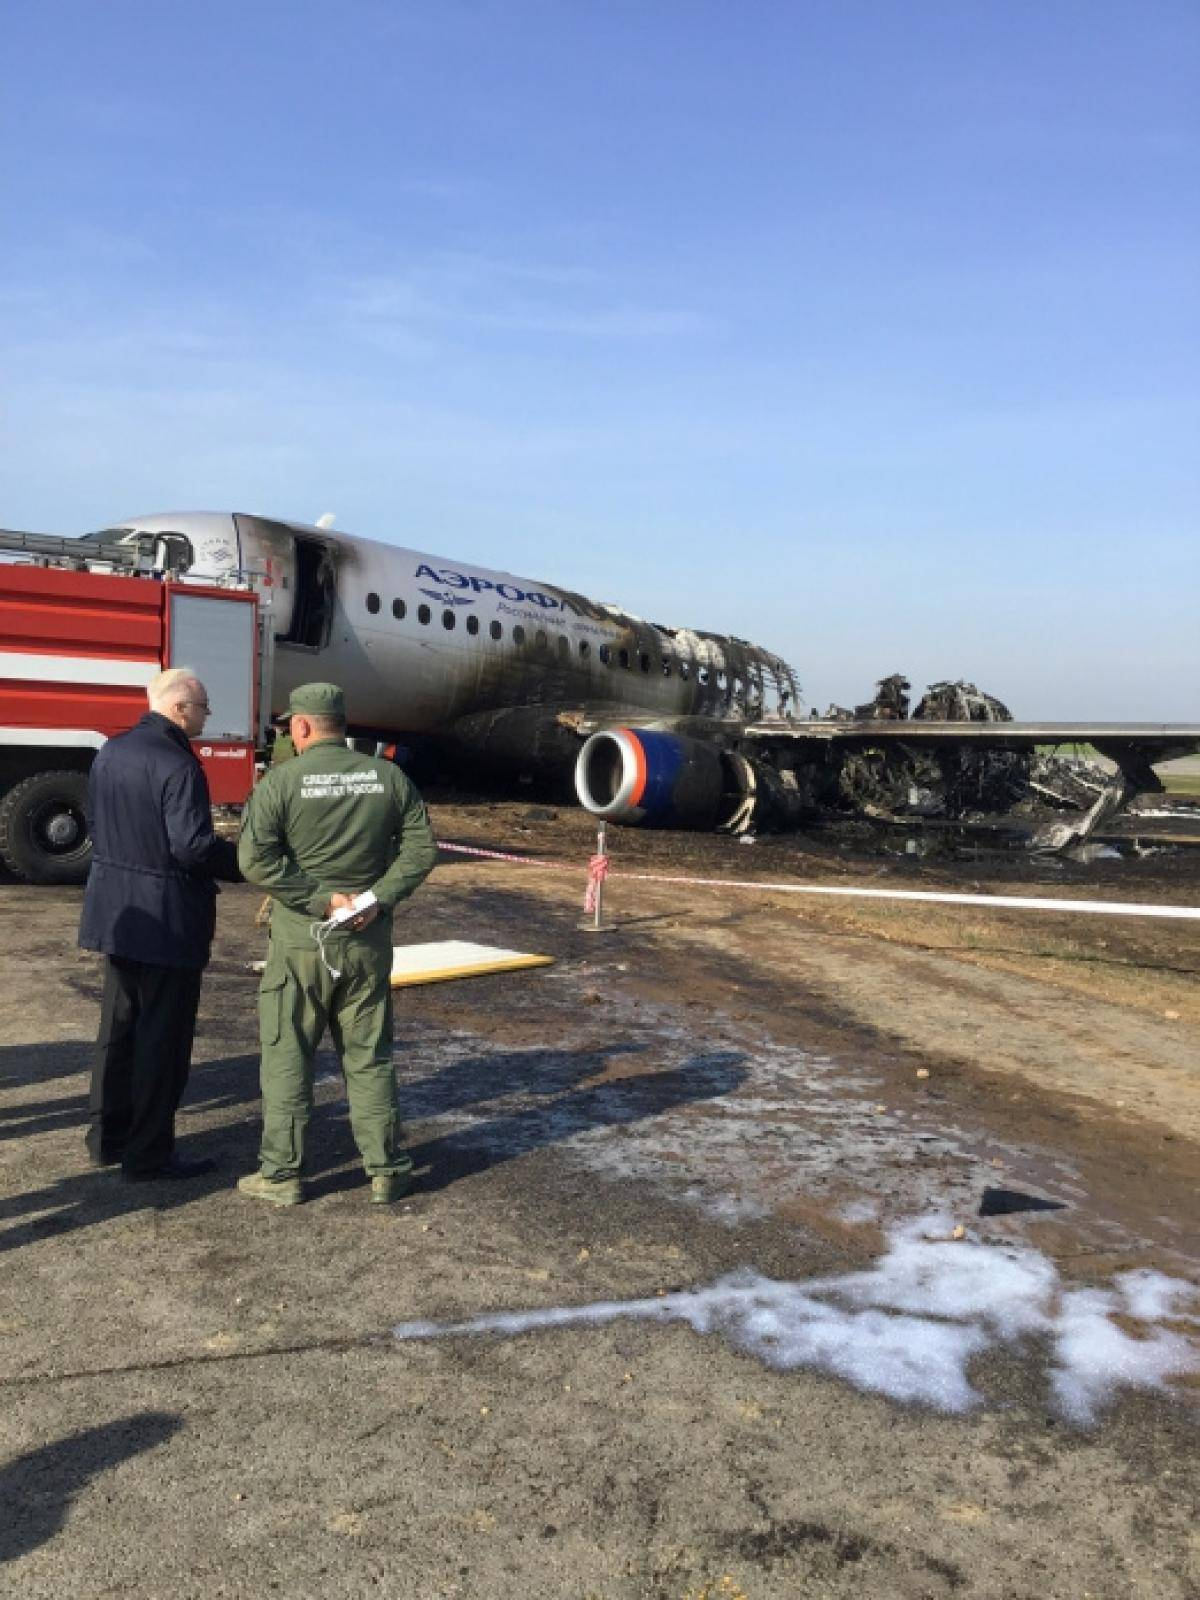 Chairman of Russia's Investigative Committee Bastrykin visits the scene of an incident involving an Aeroflot Sukhoi Superjet 100 passenger plane at Moscow's Sheremetyevo airport